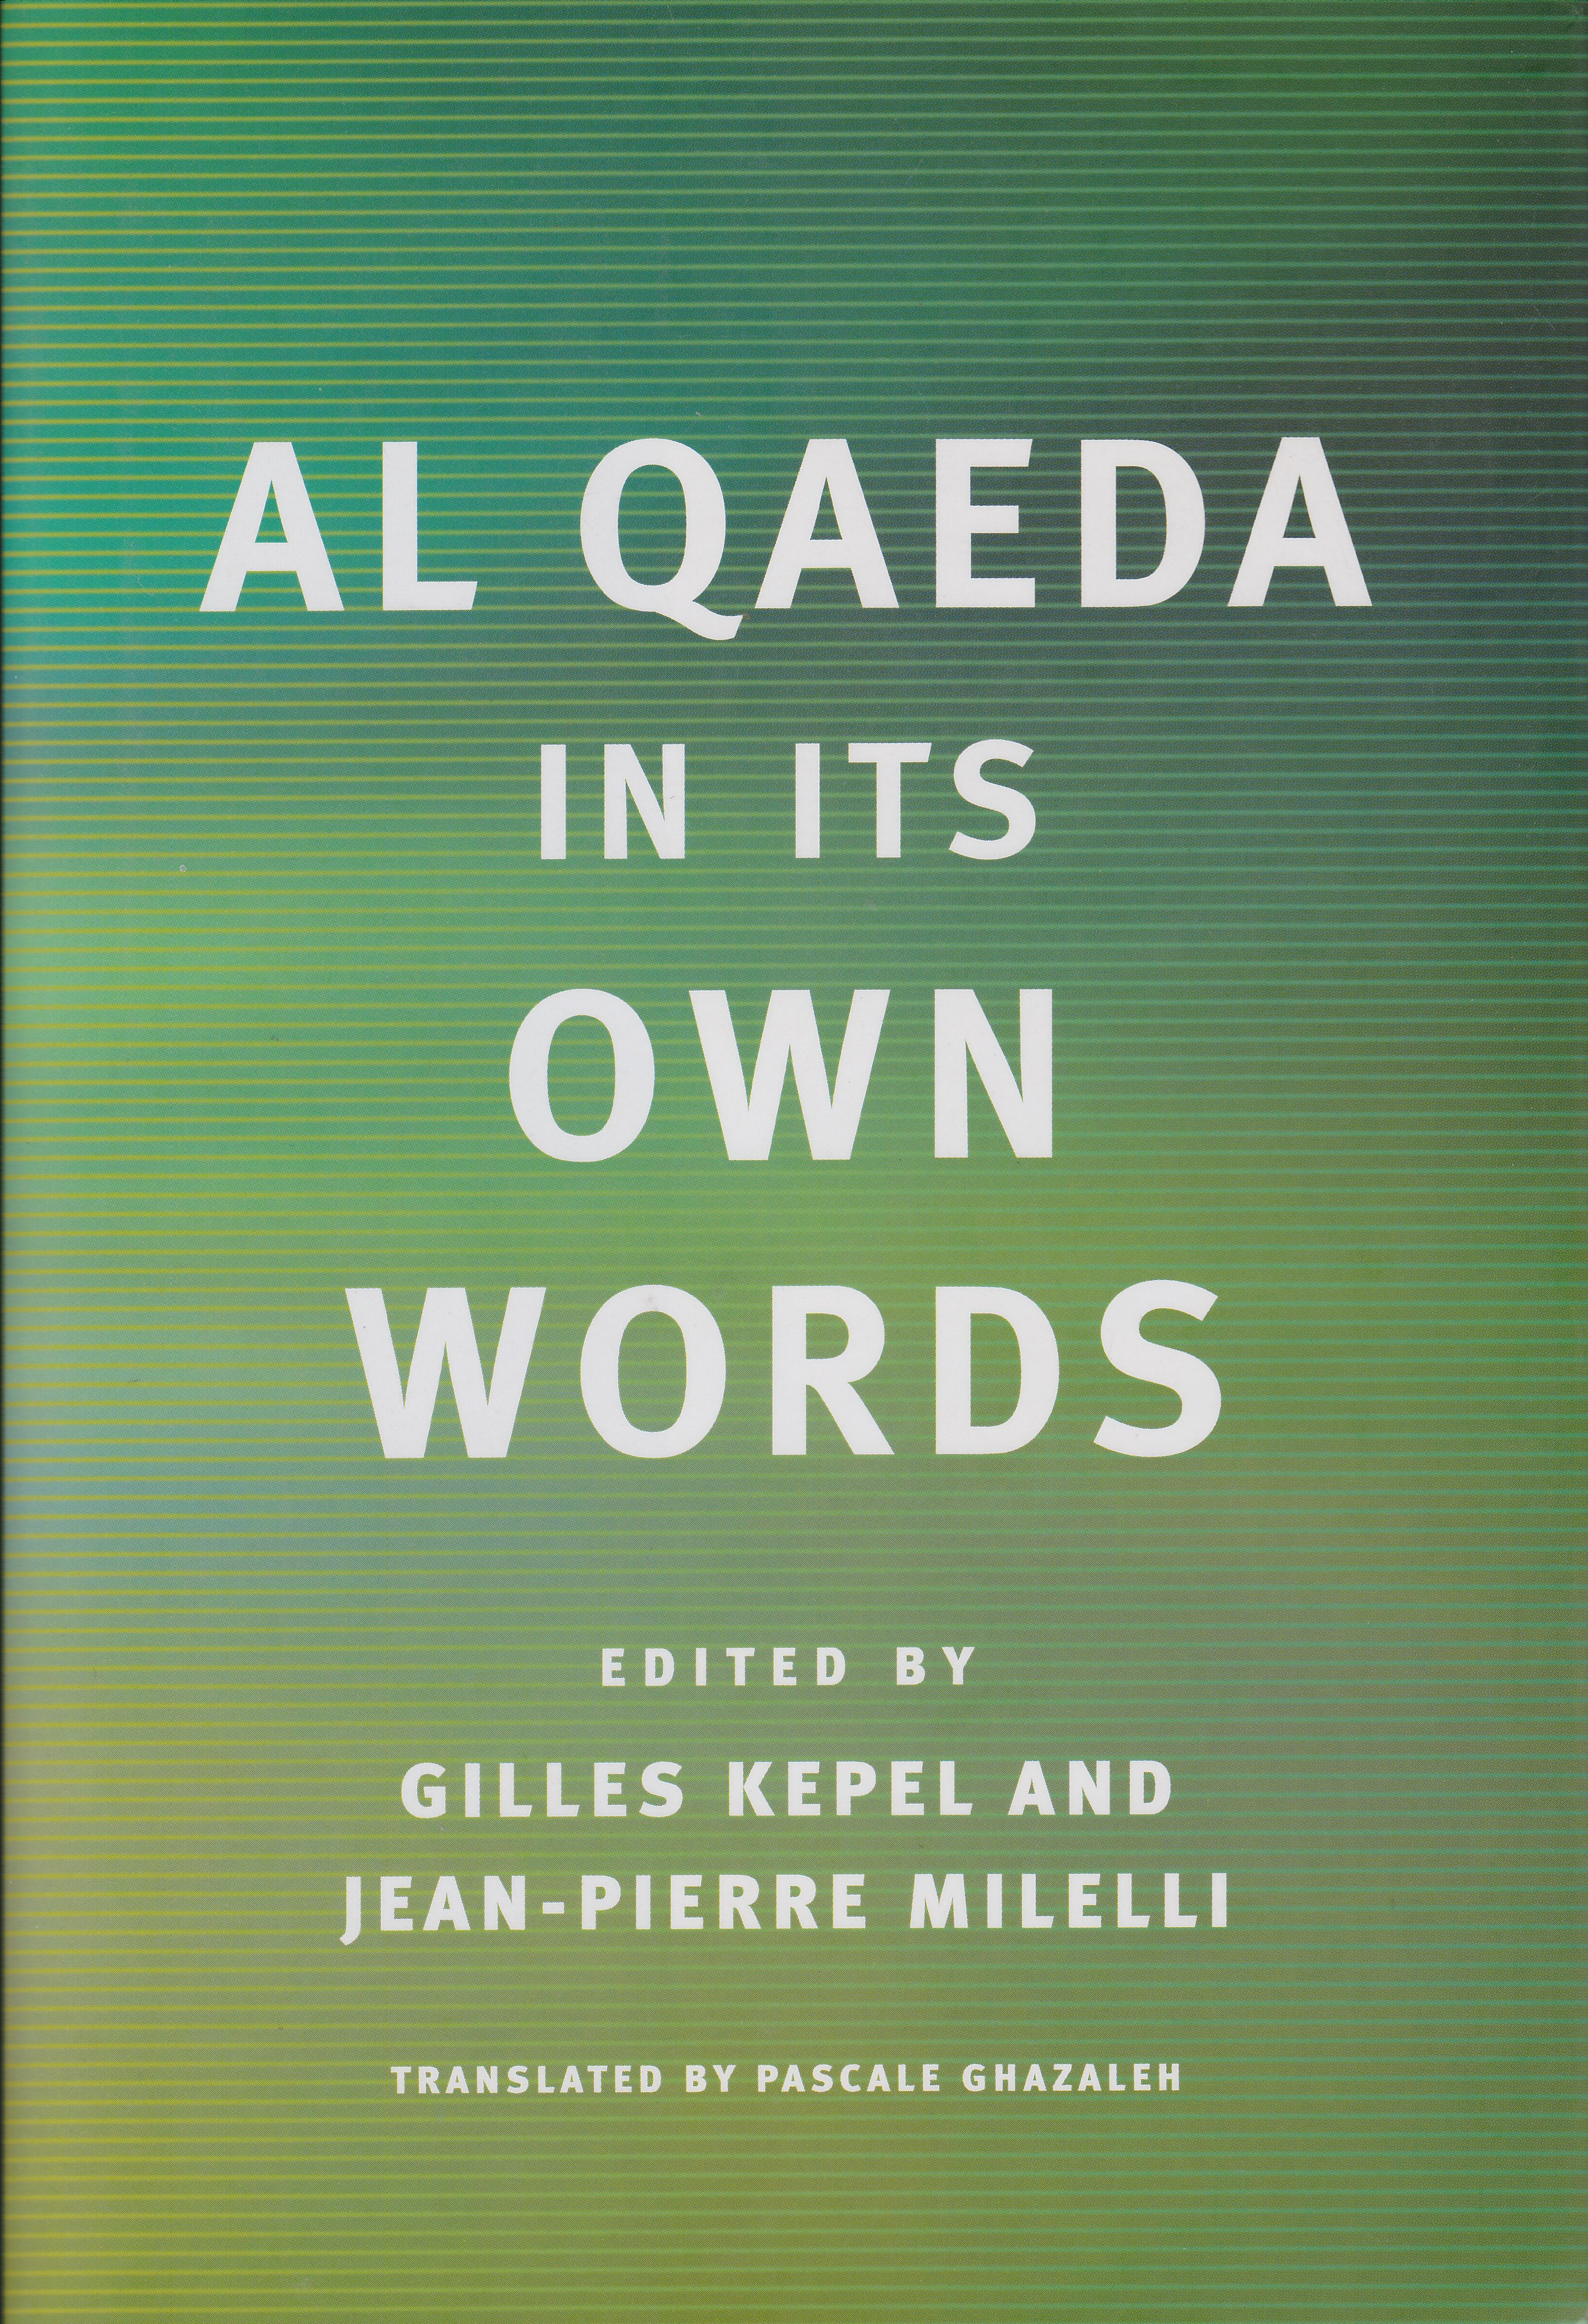 al qaeda research A financial profile of the terrorism of al-qaeda and its affiliates by juan miguel del cid gómez abstract this working document offers an analysis of the sources of financing of the al-qaeda network including some of its affiliated groups.